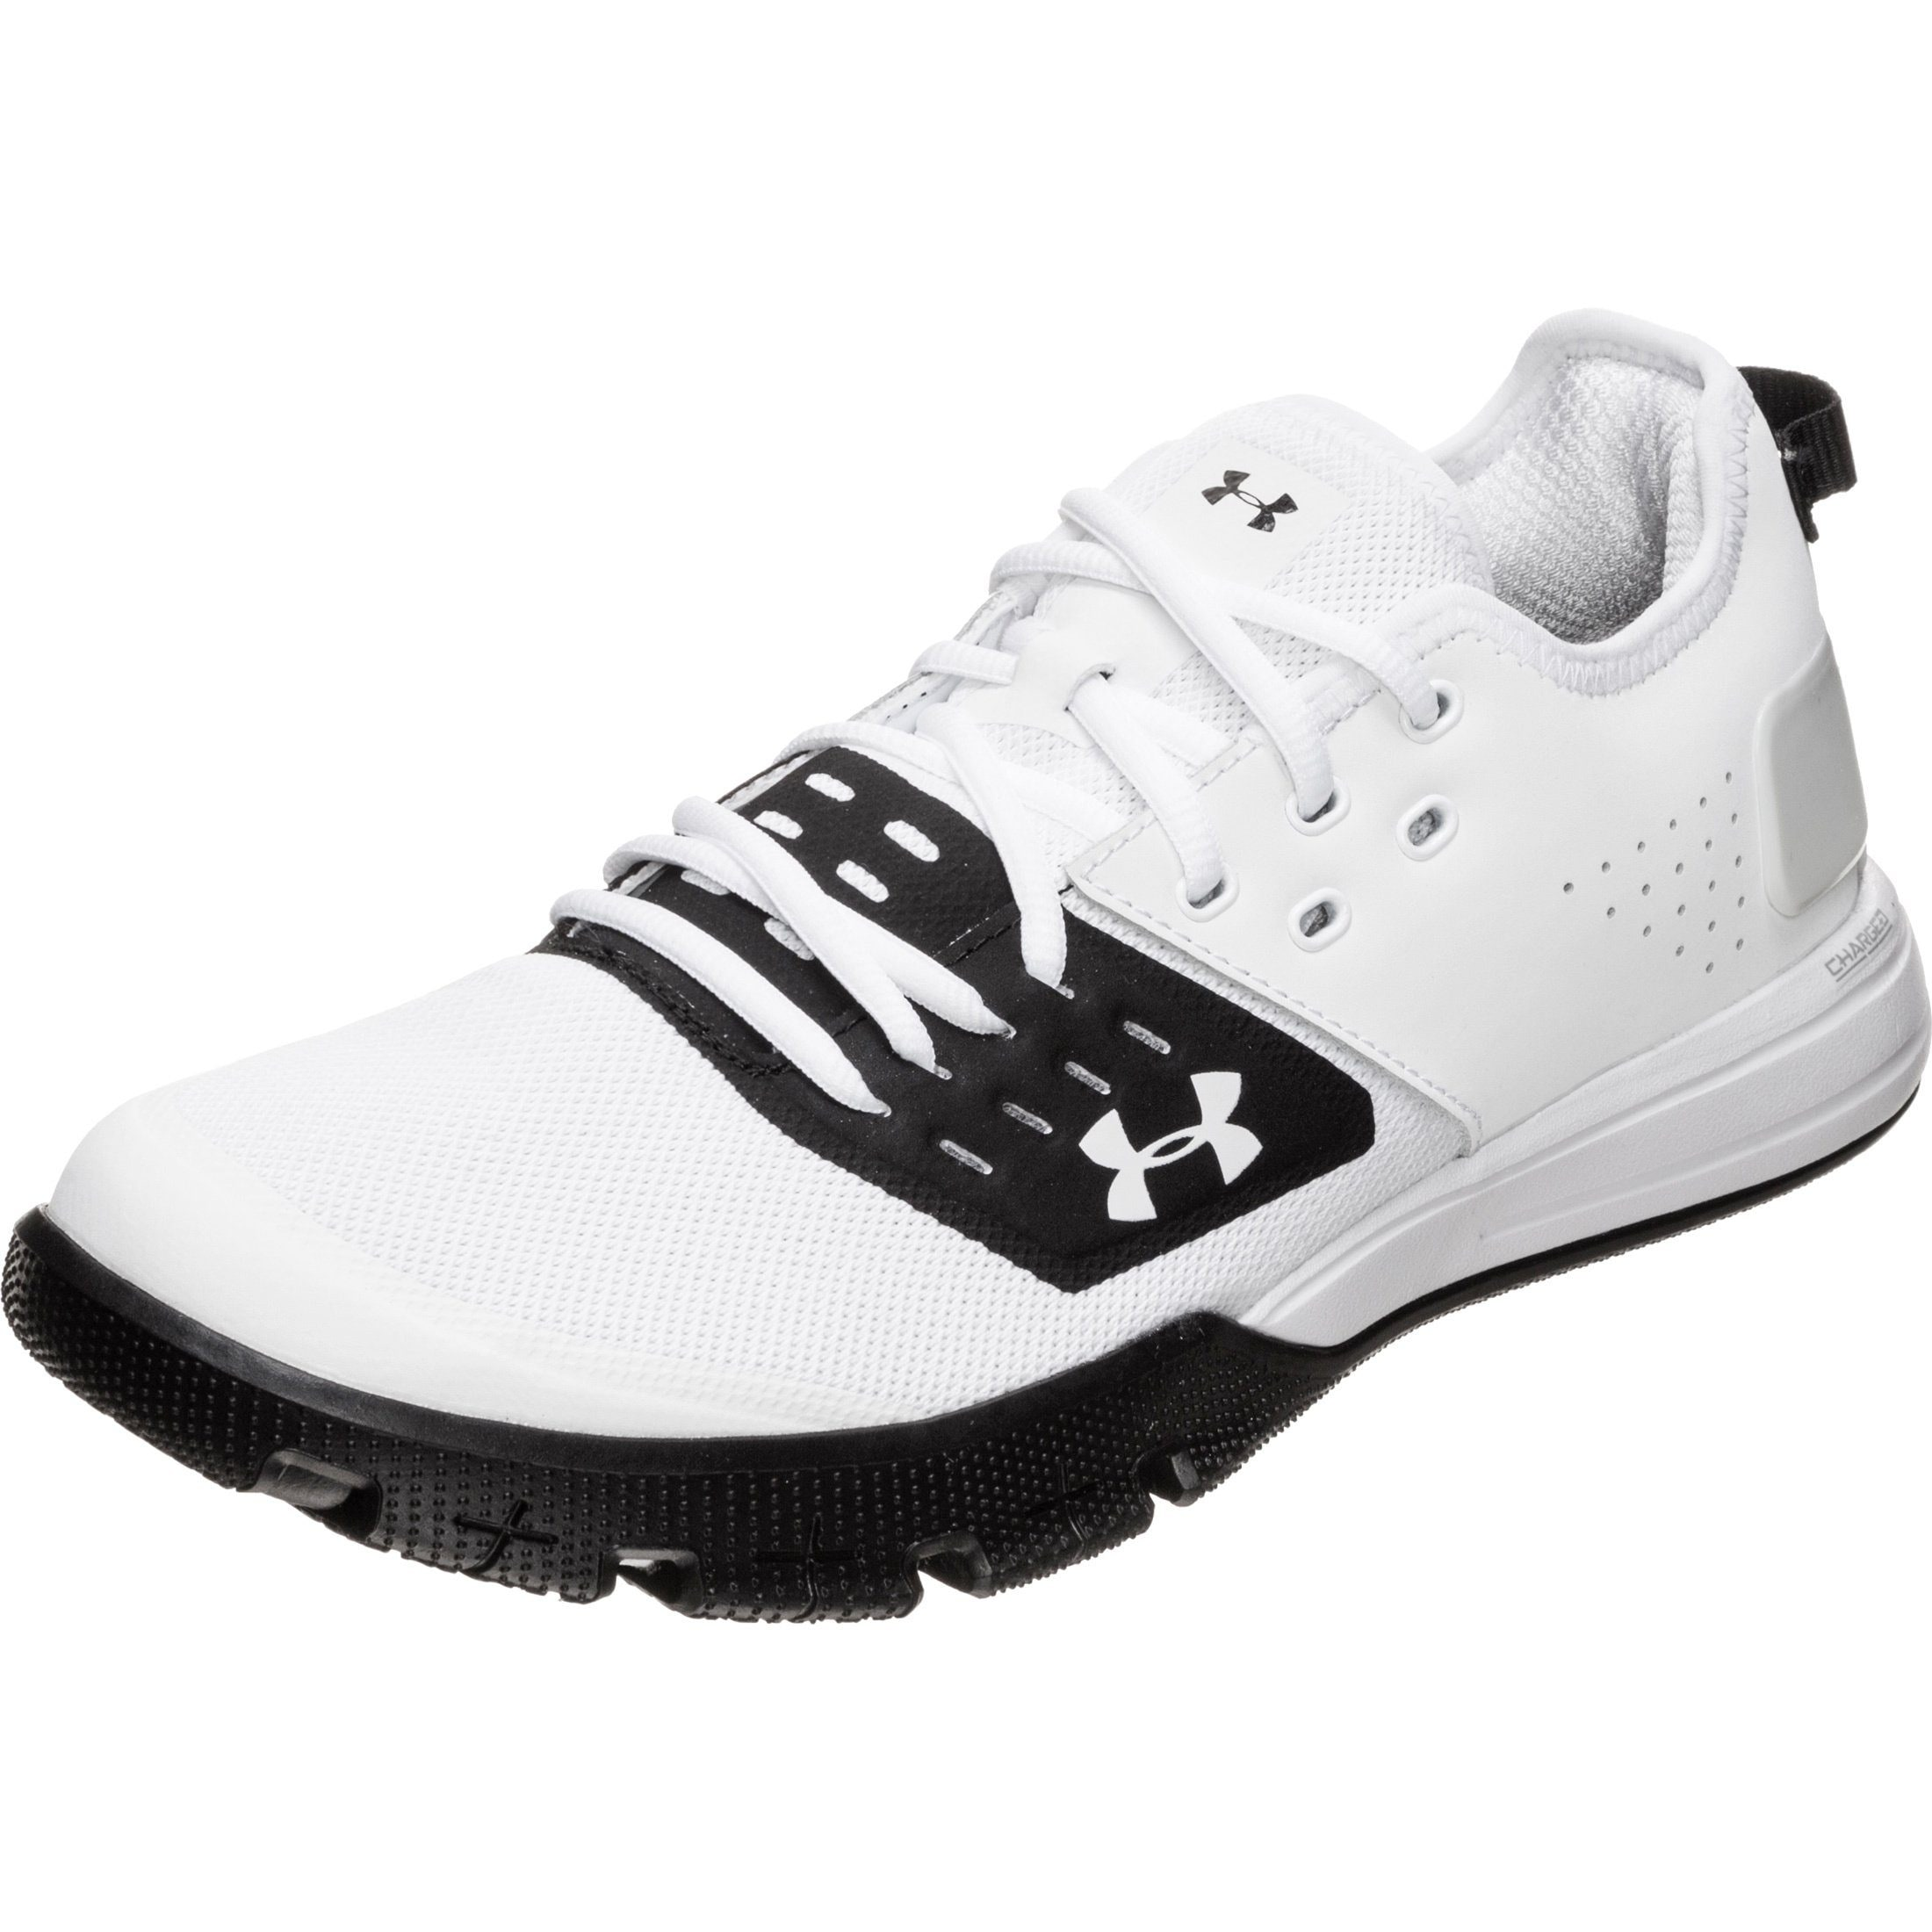 Under Armour Trainingsschuh Charged Ultimate 30 | 00191633877050, 00192564909346